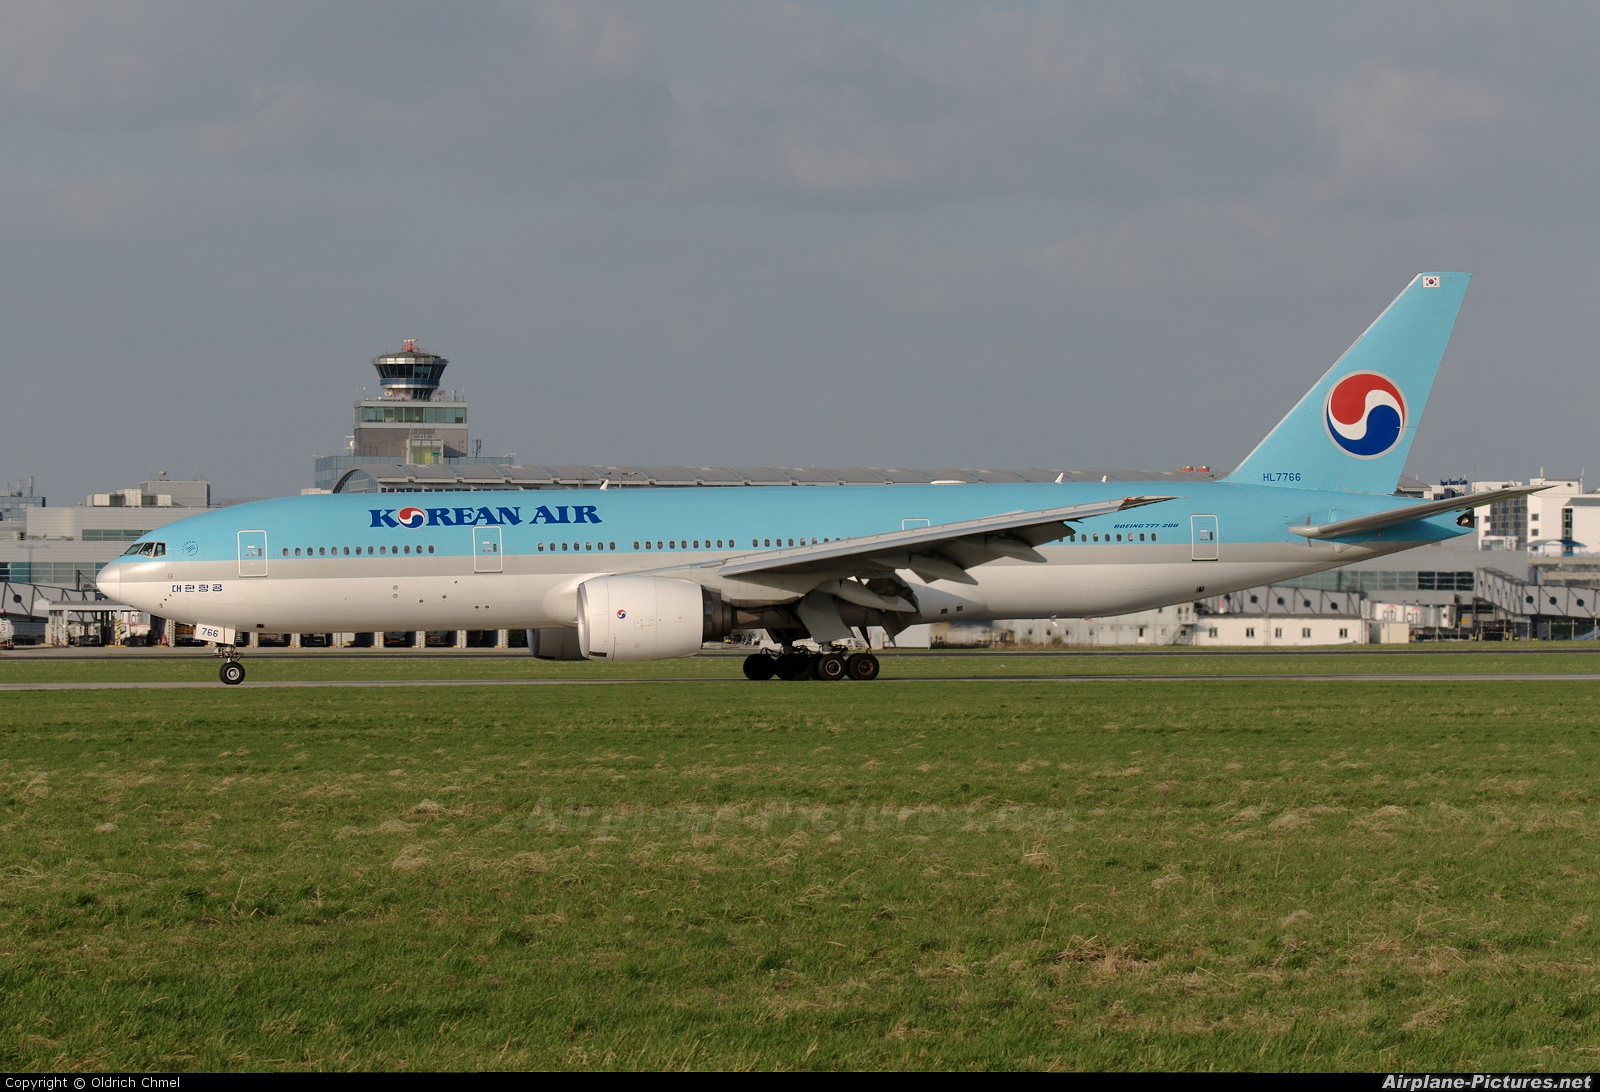 Korean Air HL7766 aircraft at Prague - Václav Havel